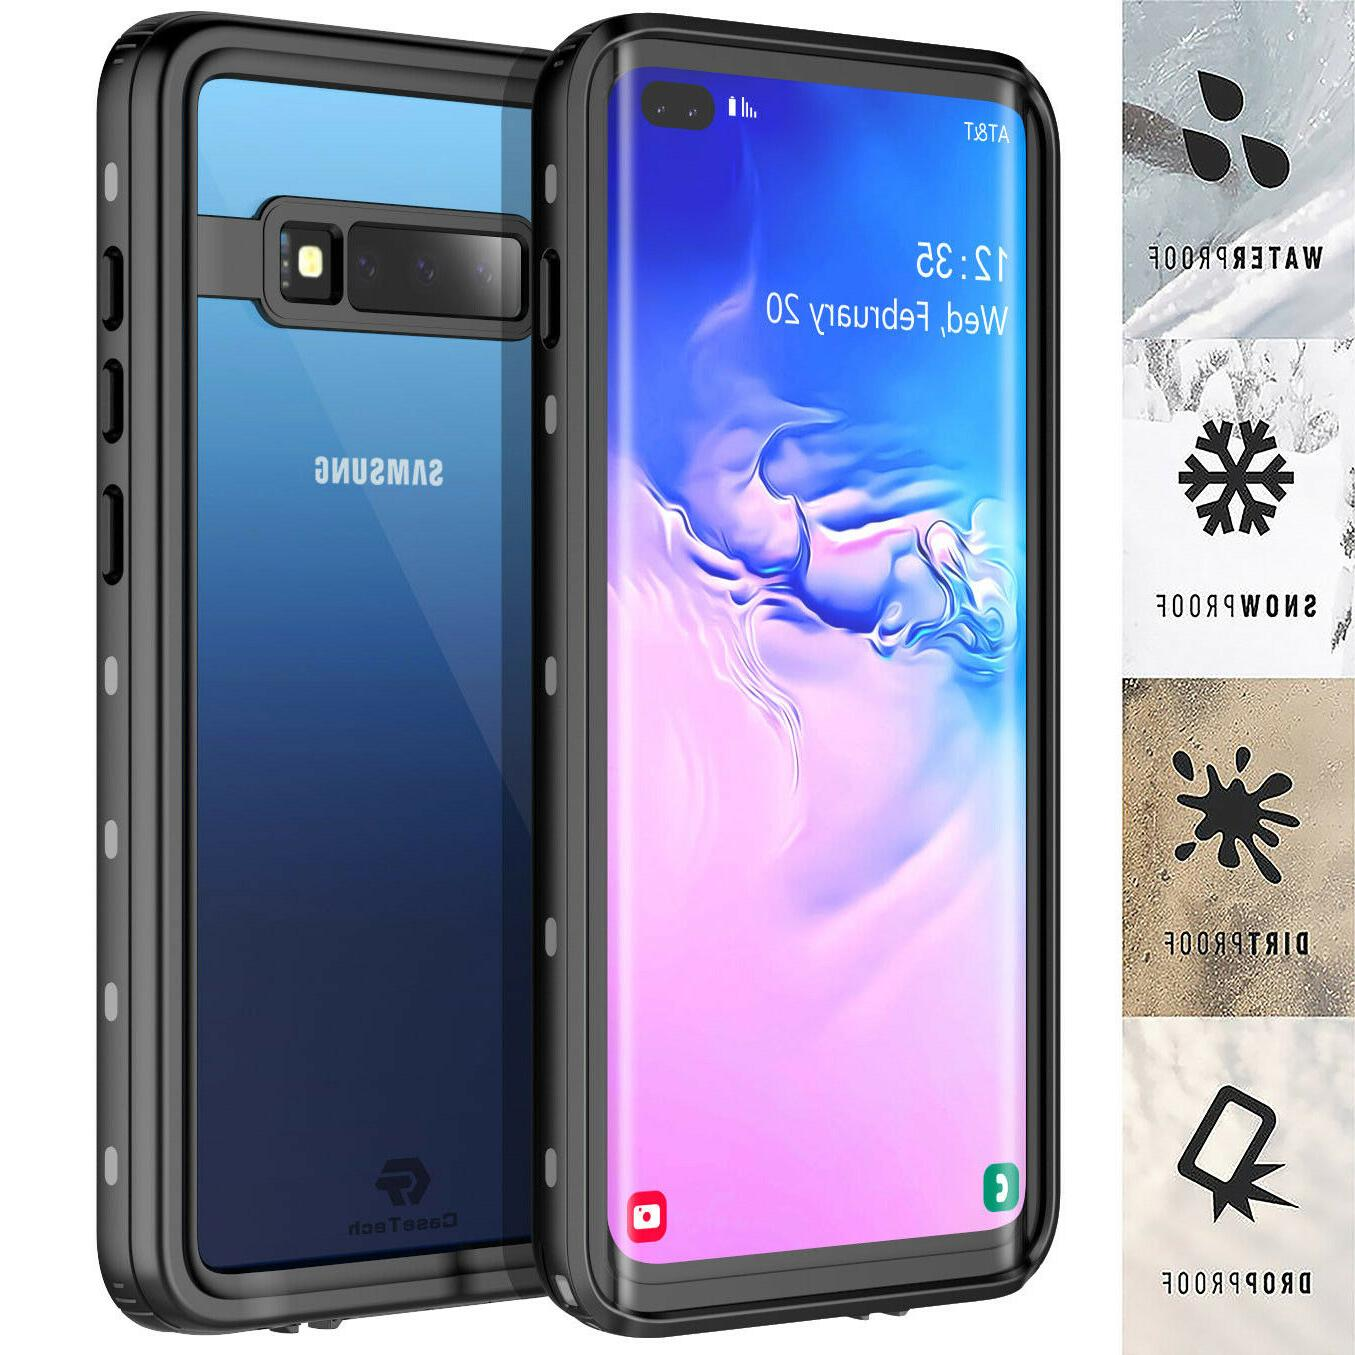 galaxy s10 plus case waterproof shockproof dirtproof